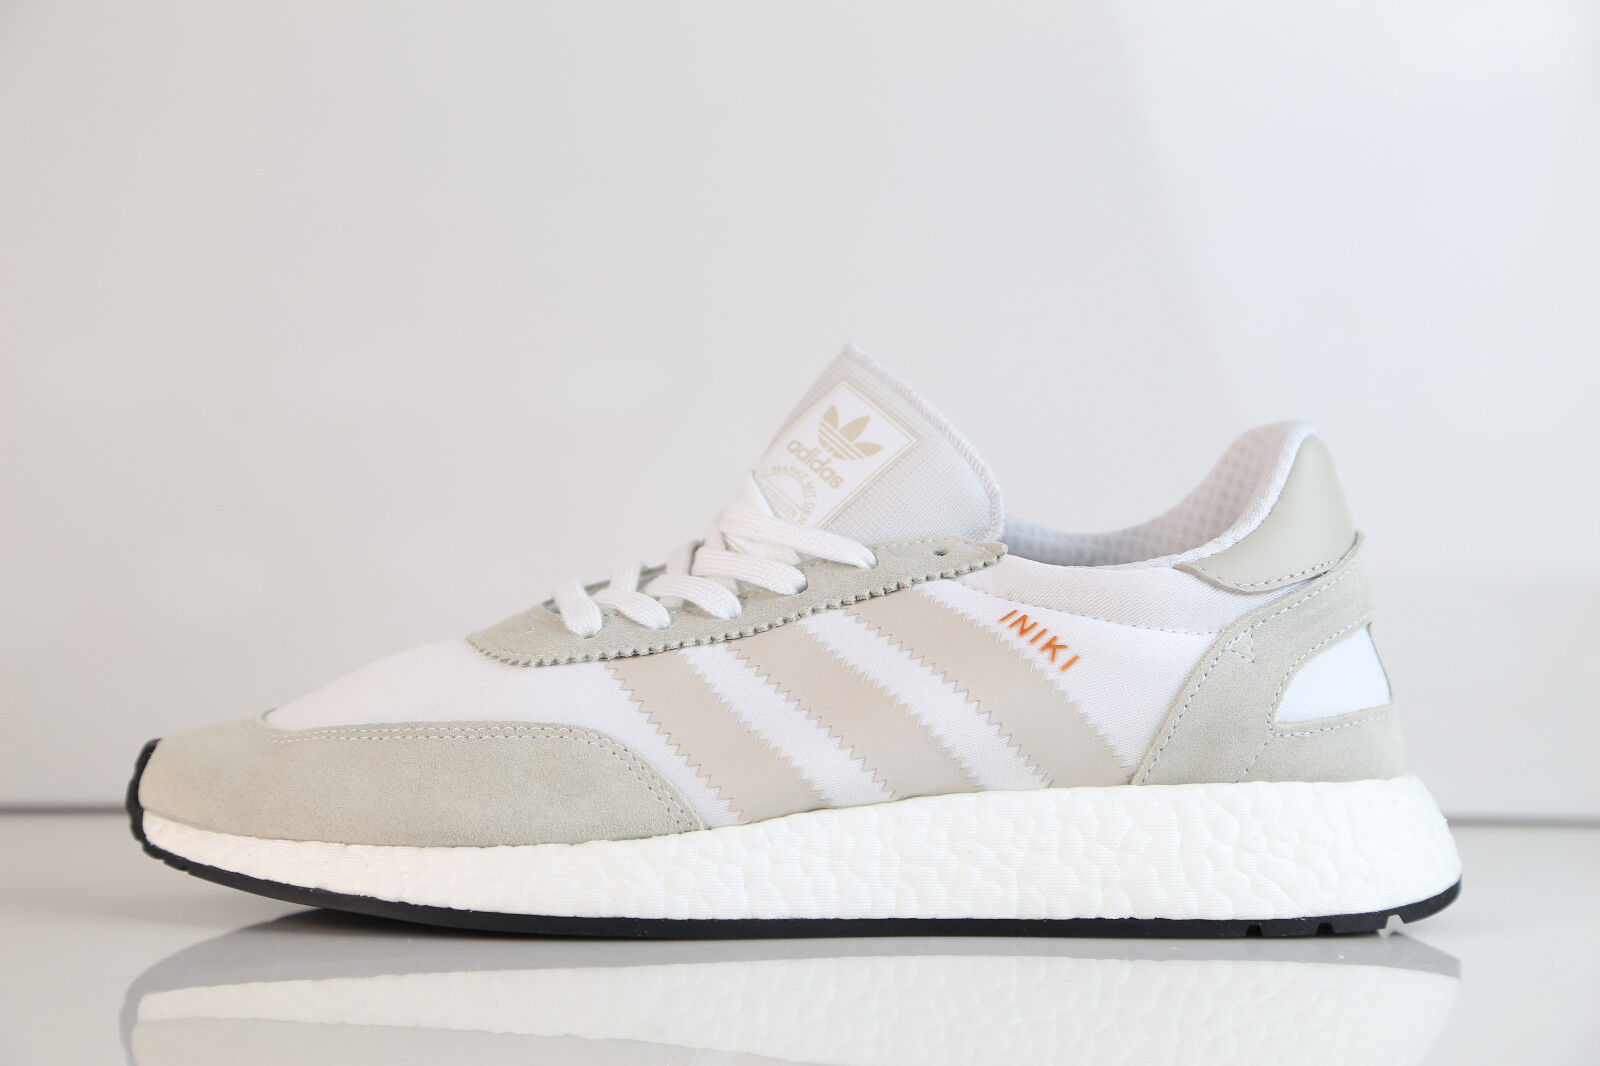 Adidas Adidas Adidas impulse iniki läufer weiße bb2101 8-10.5 ultra wildleder originale stan 9c7934